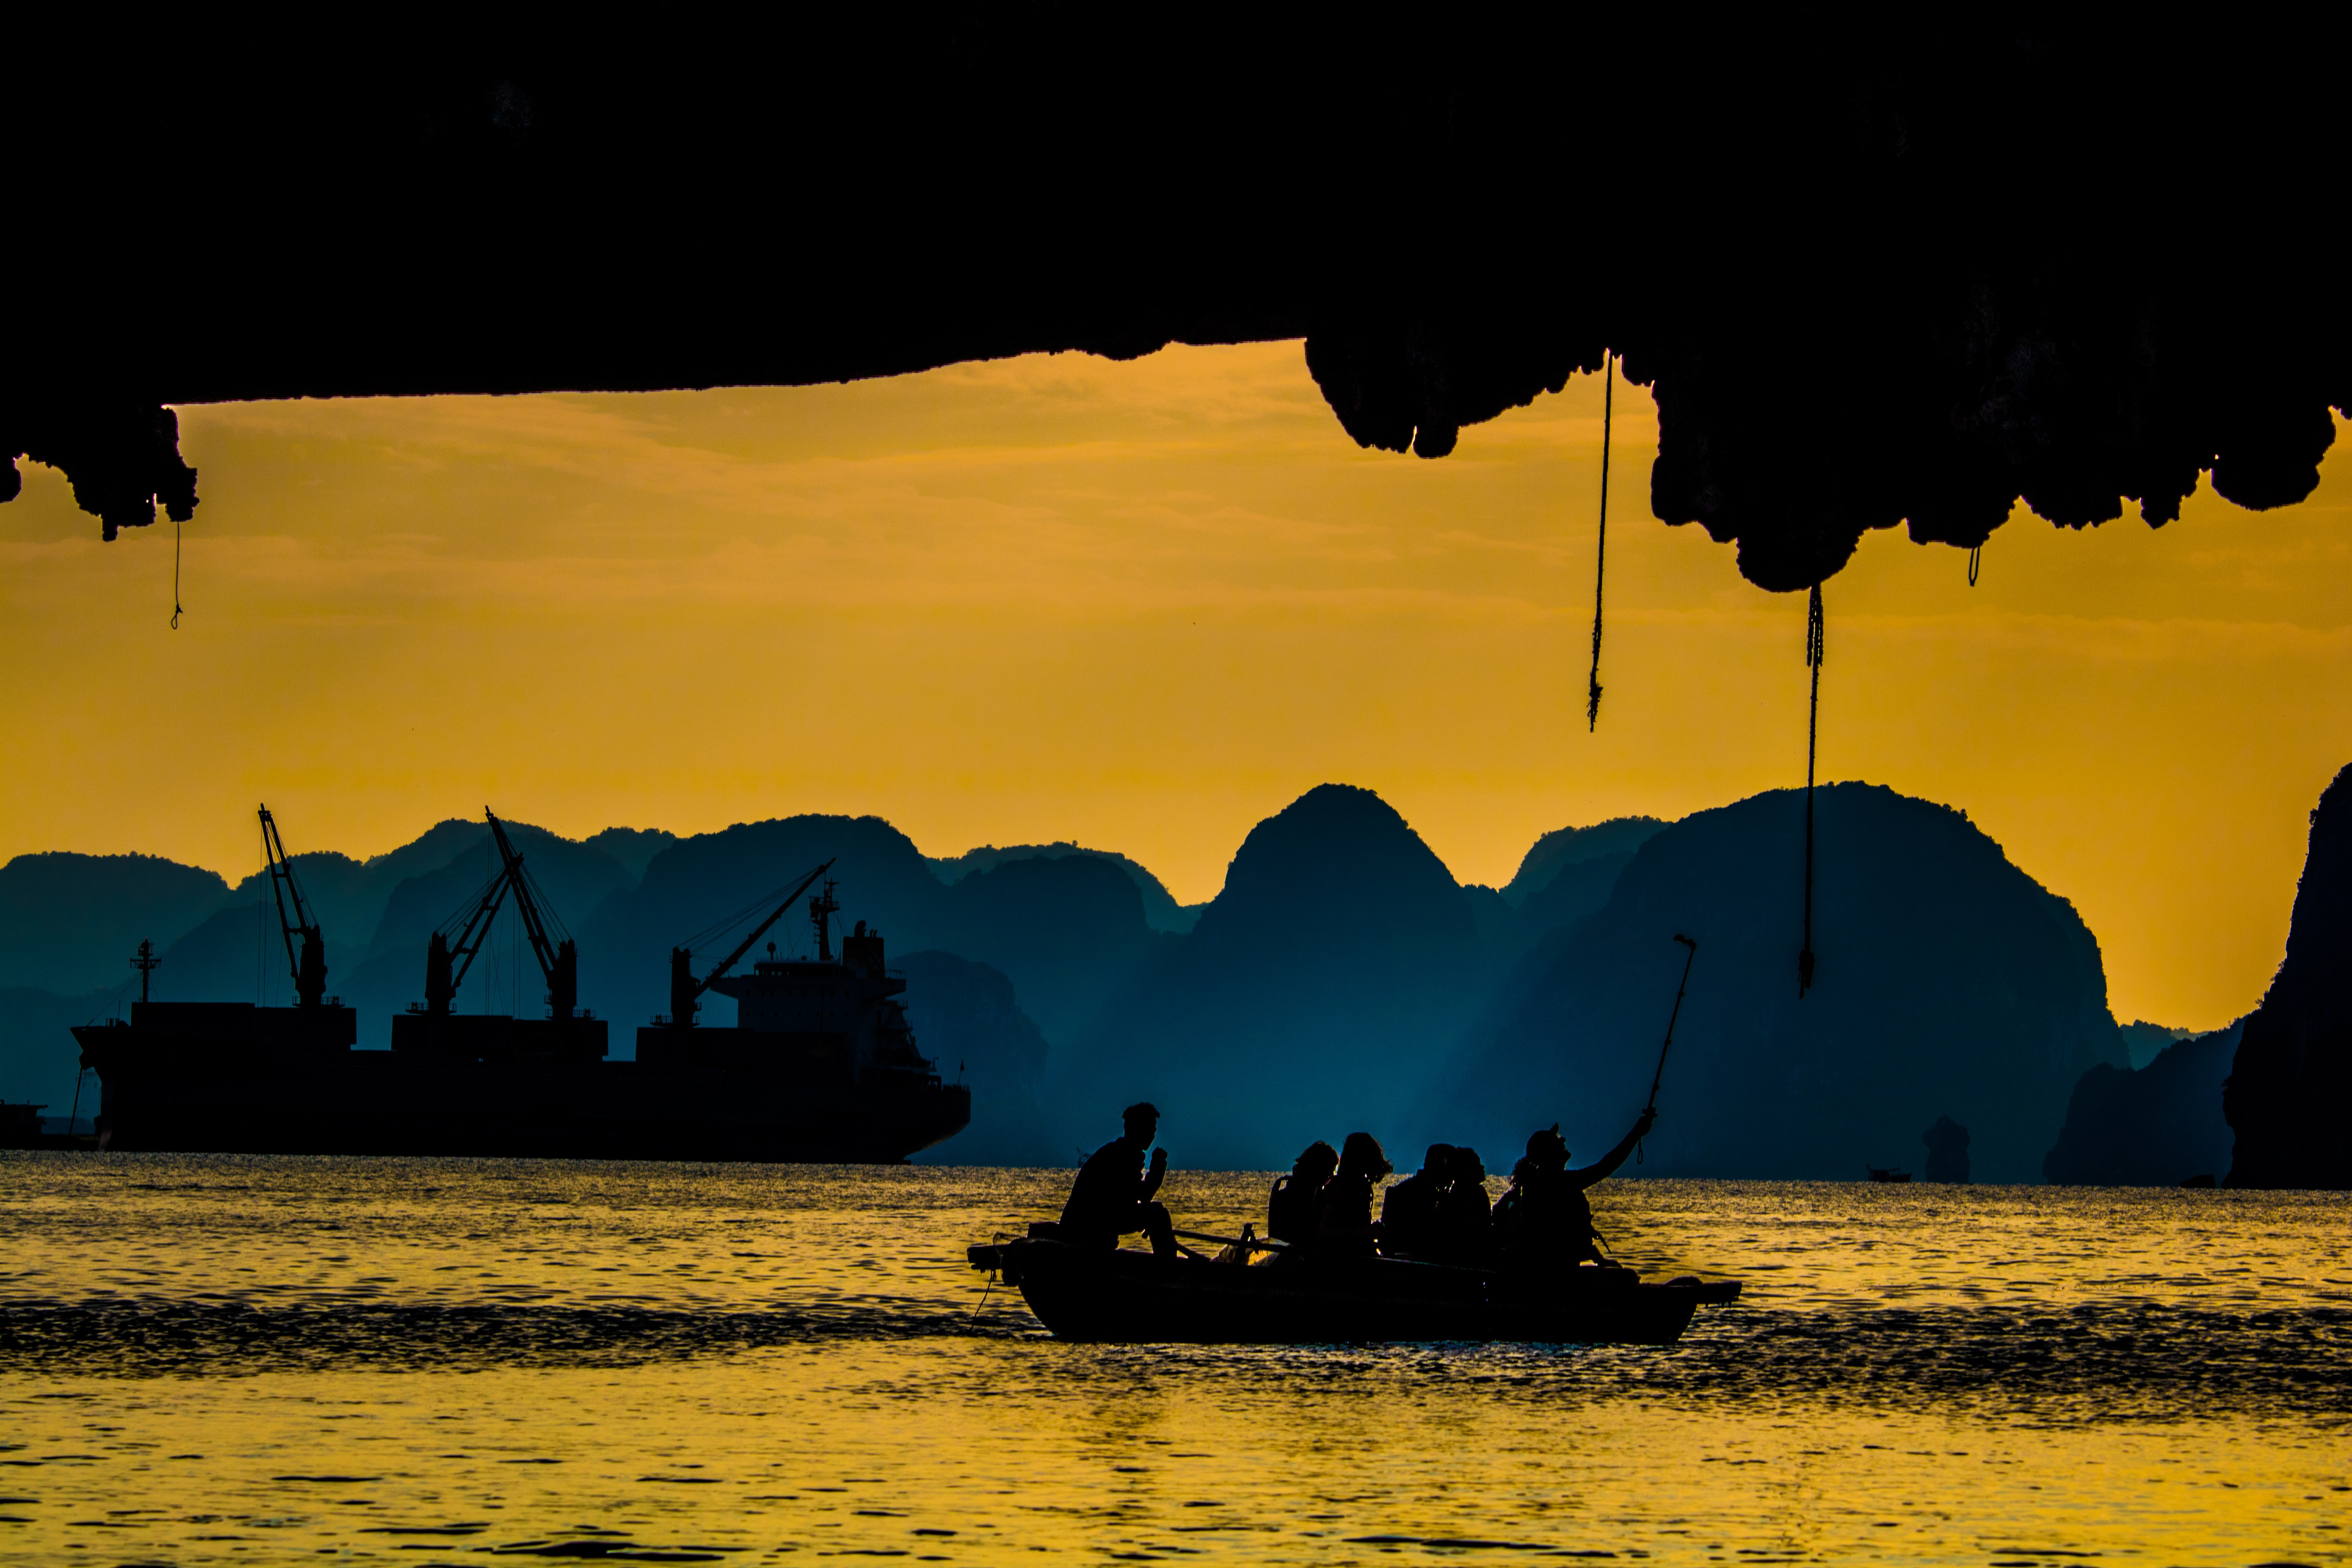 silhouette group of people riding on boat